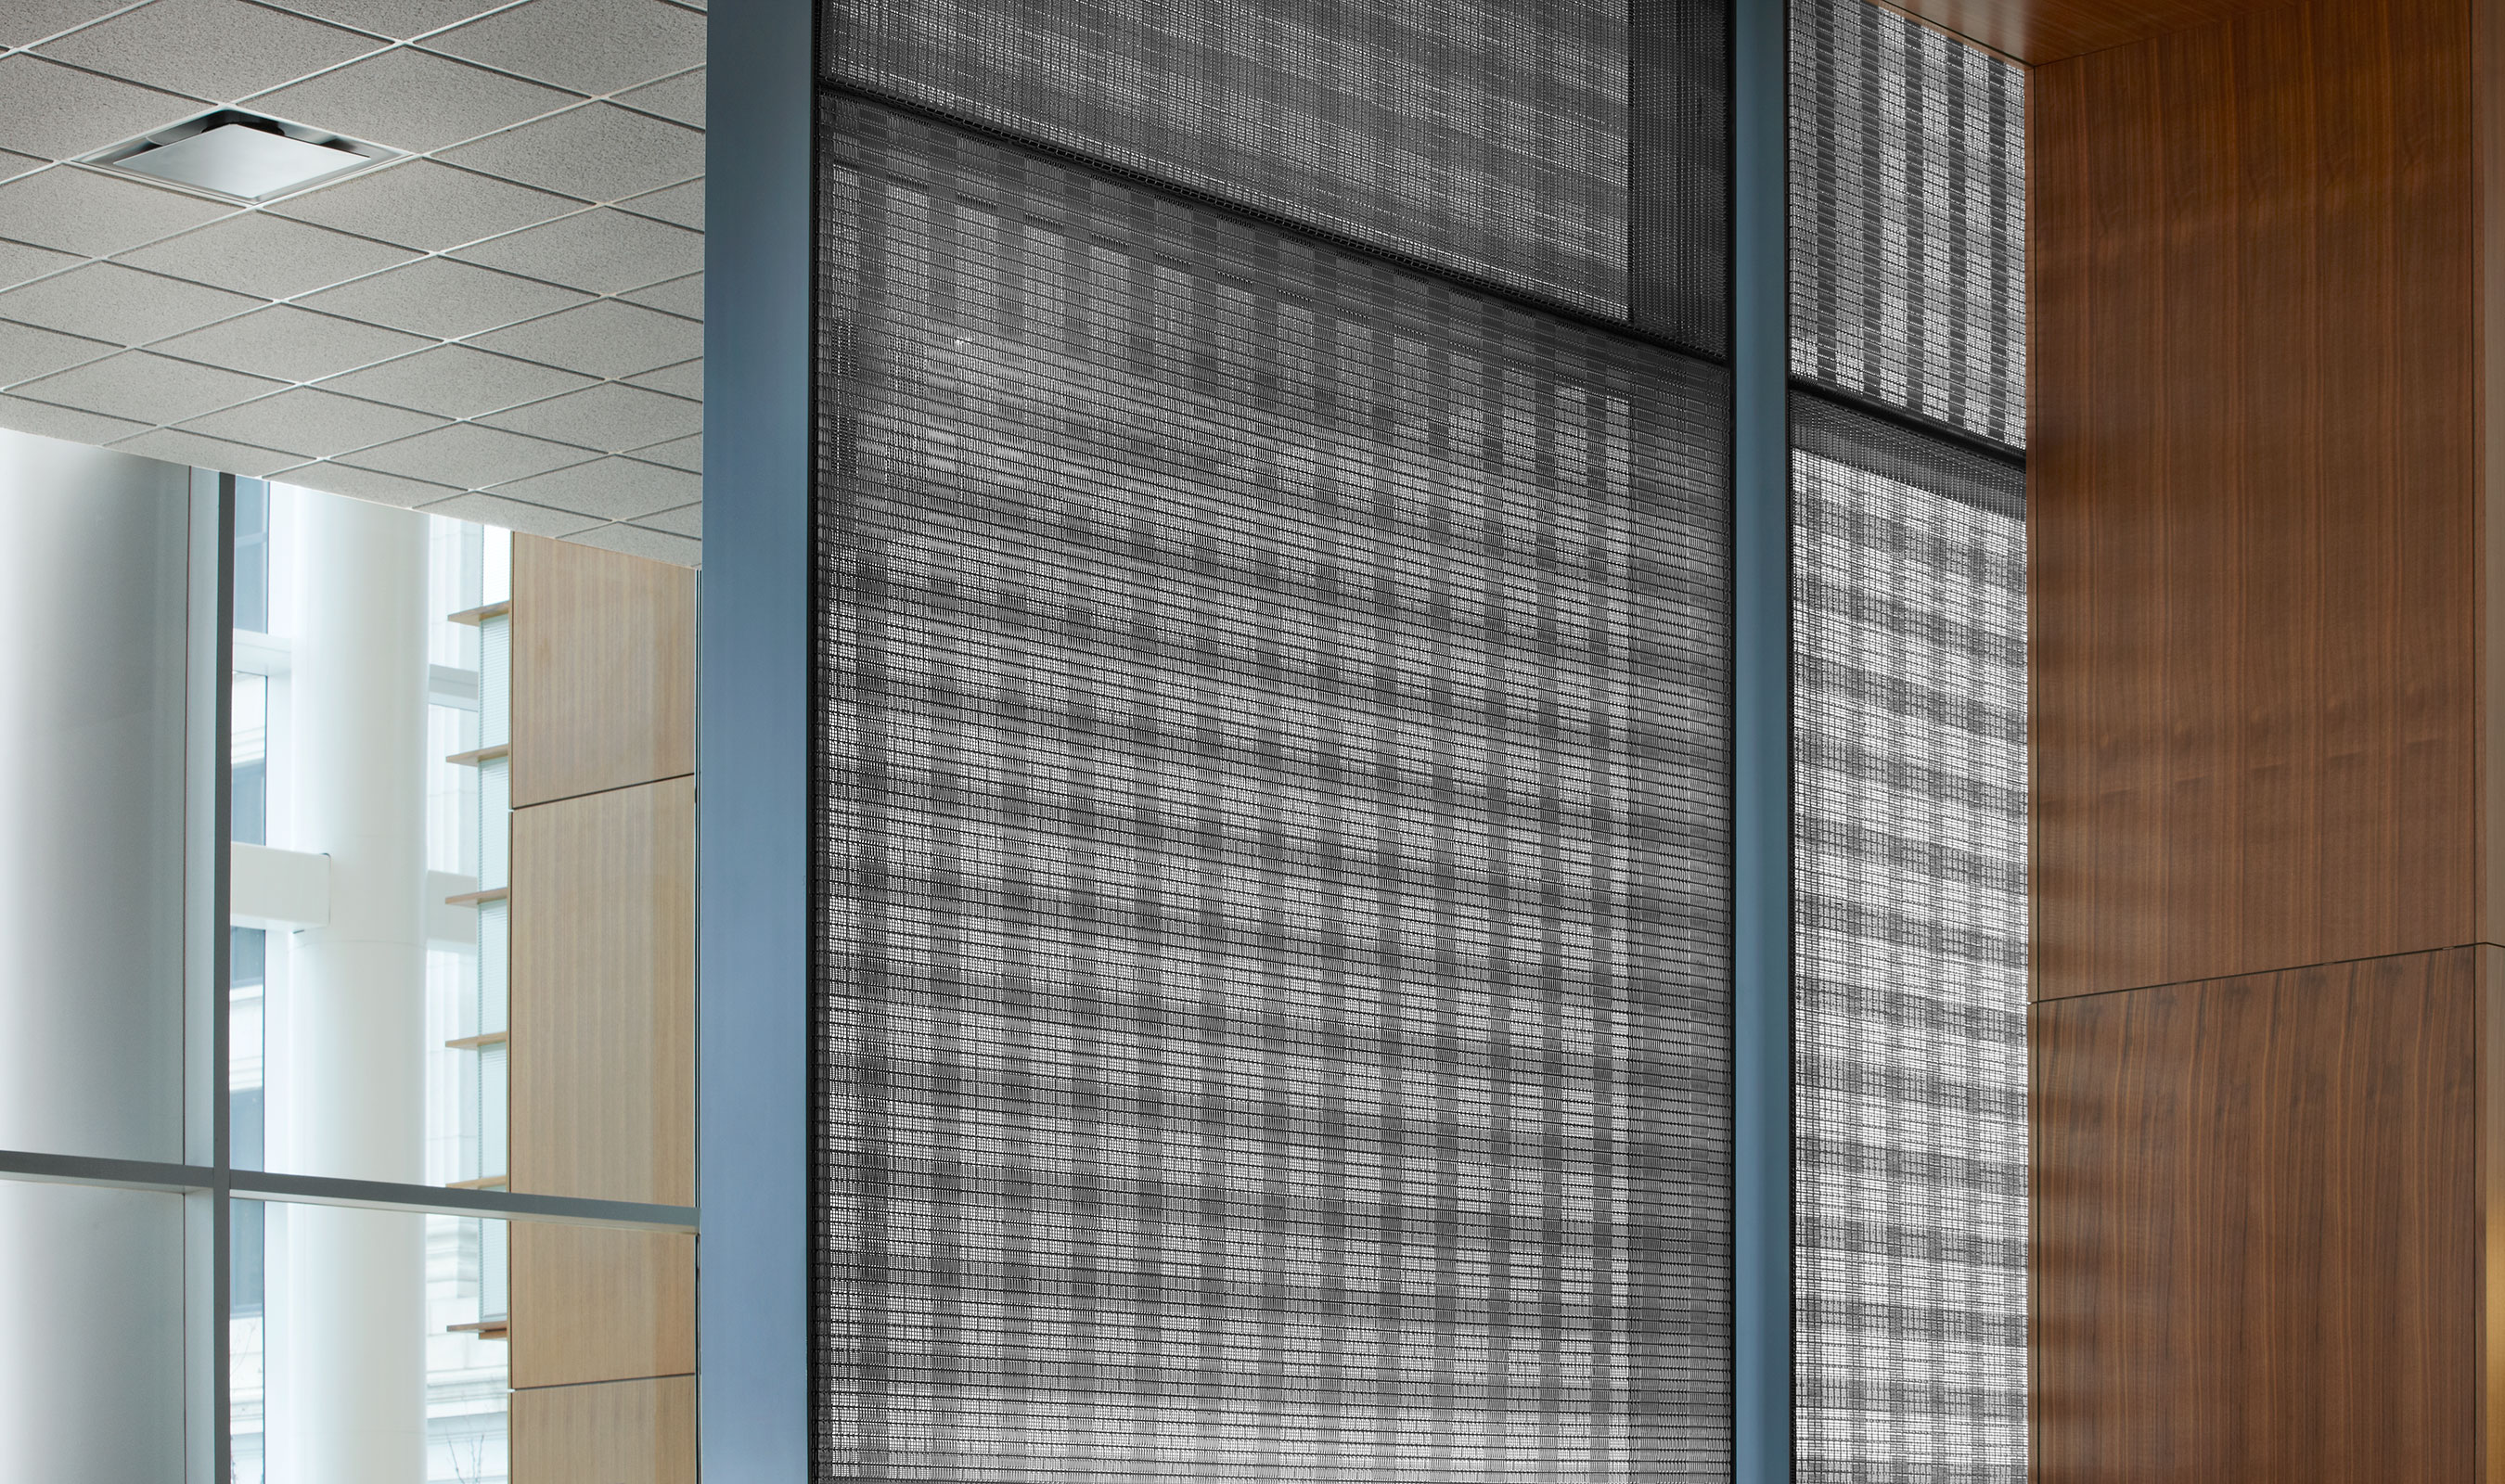 PFZ-53's stripes create unique high and low transparency areas in the design.